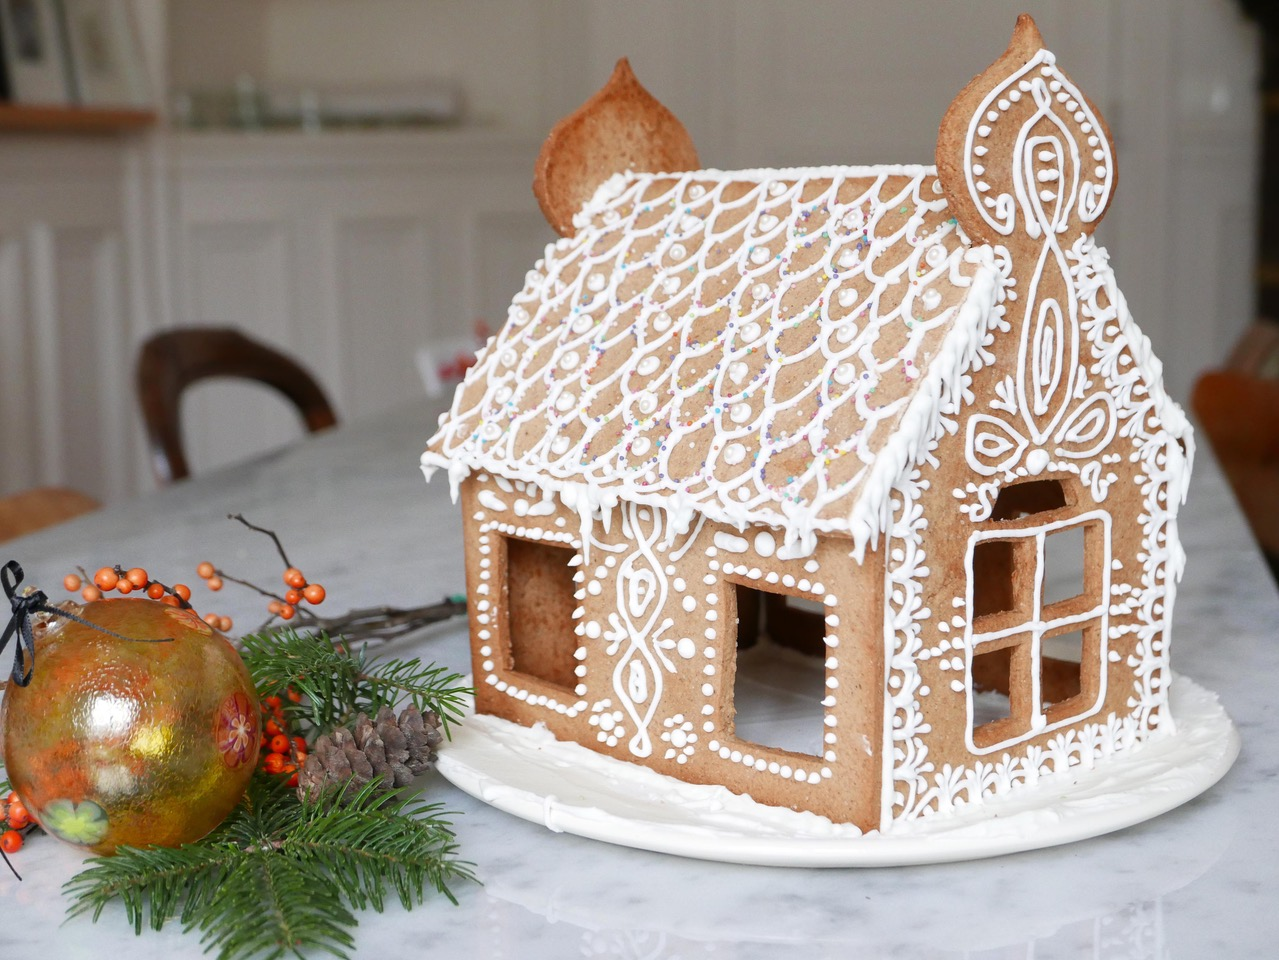 Gingerbread house (recipe and pattern)